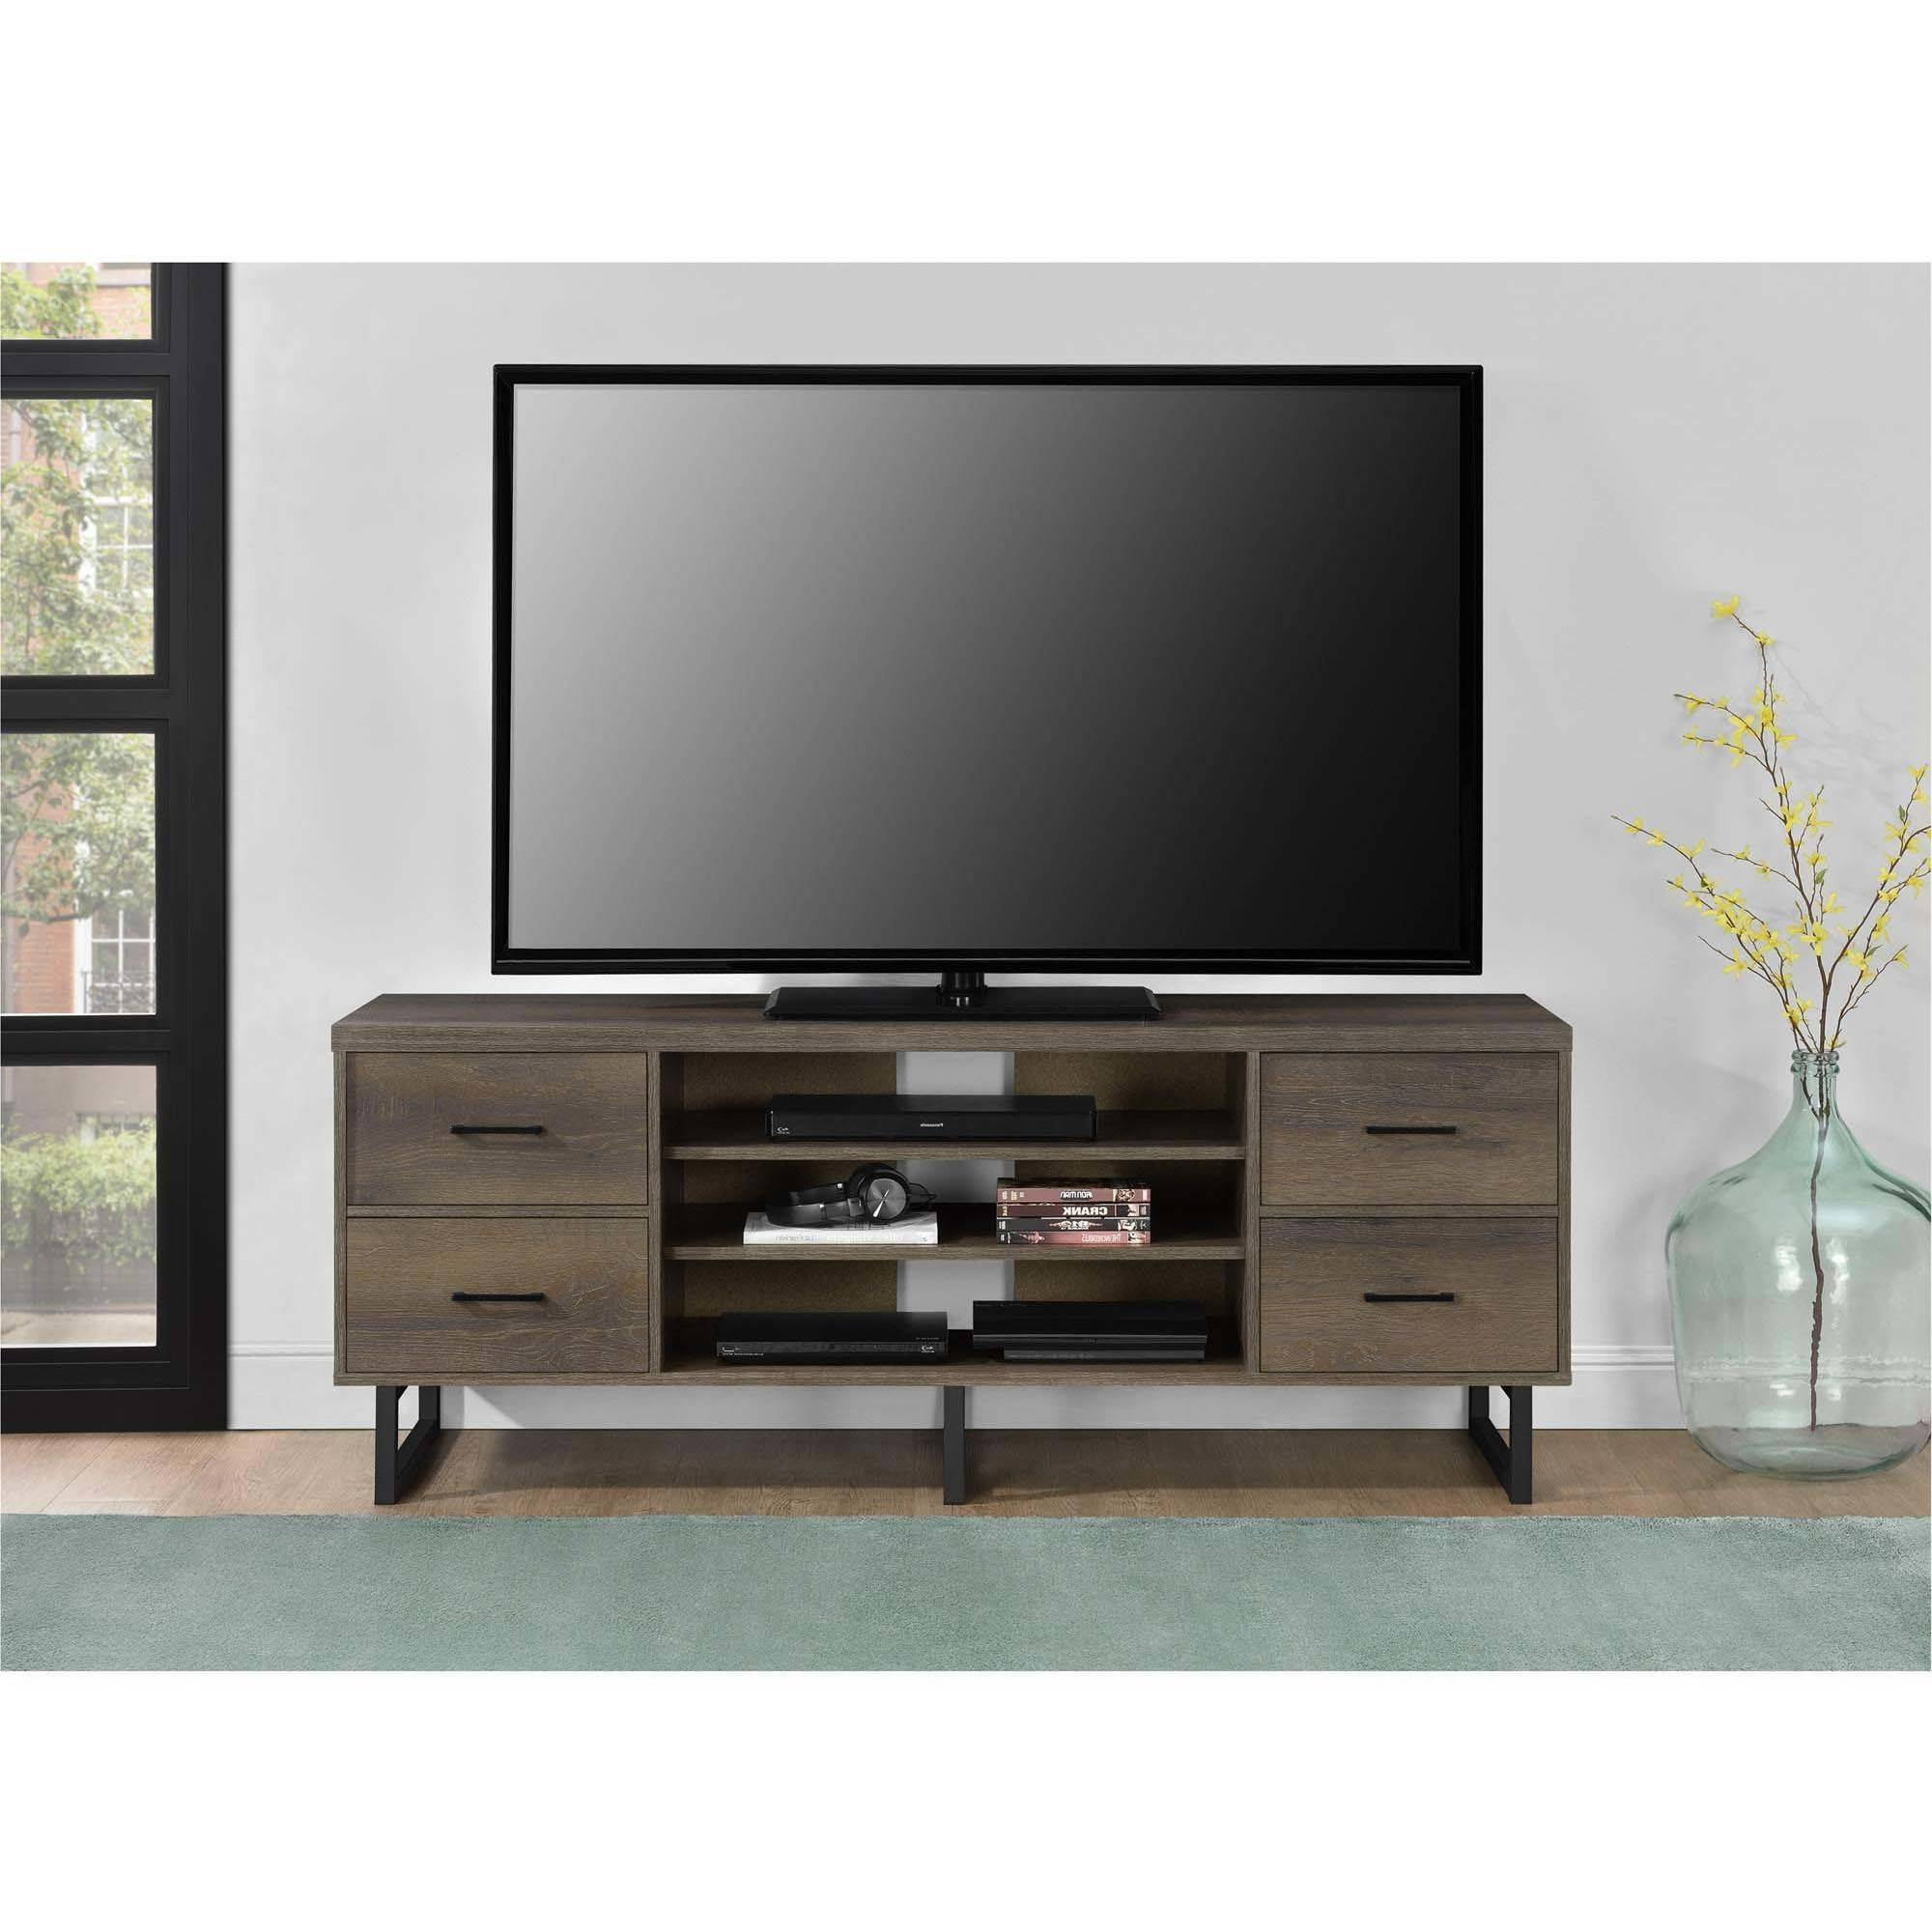 """Ameriwood Home Candon Tv Stand With Bins For Tvs Up To 60 In 2020 Leafwood Tv Stands For Tvs Up To 60"""" (View 3 of 20)"""